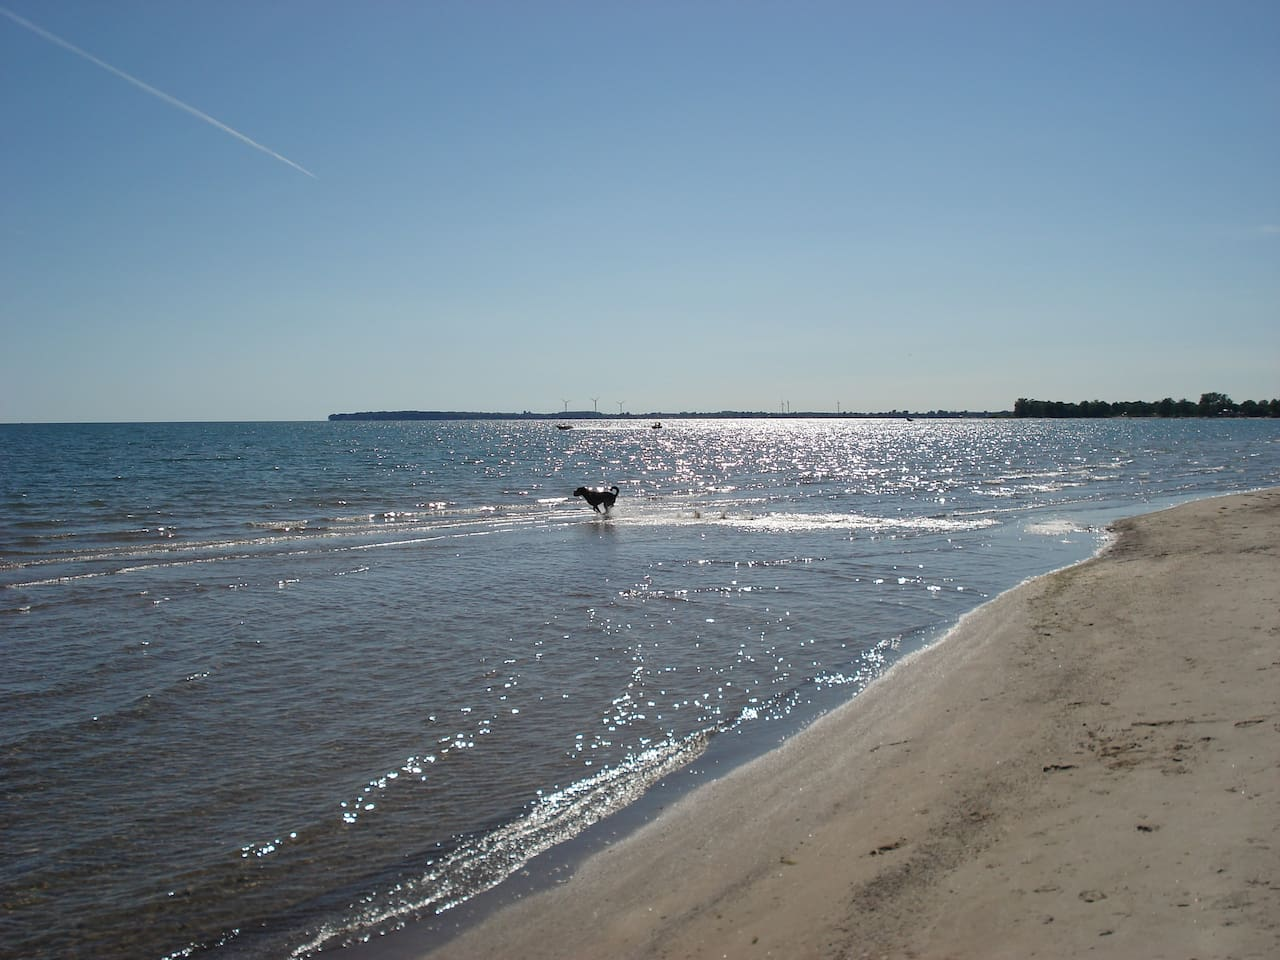 view of beach. private property right to waters edge